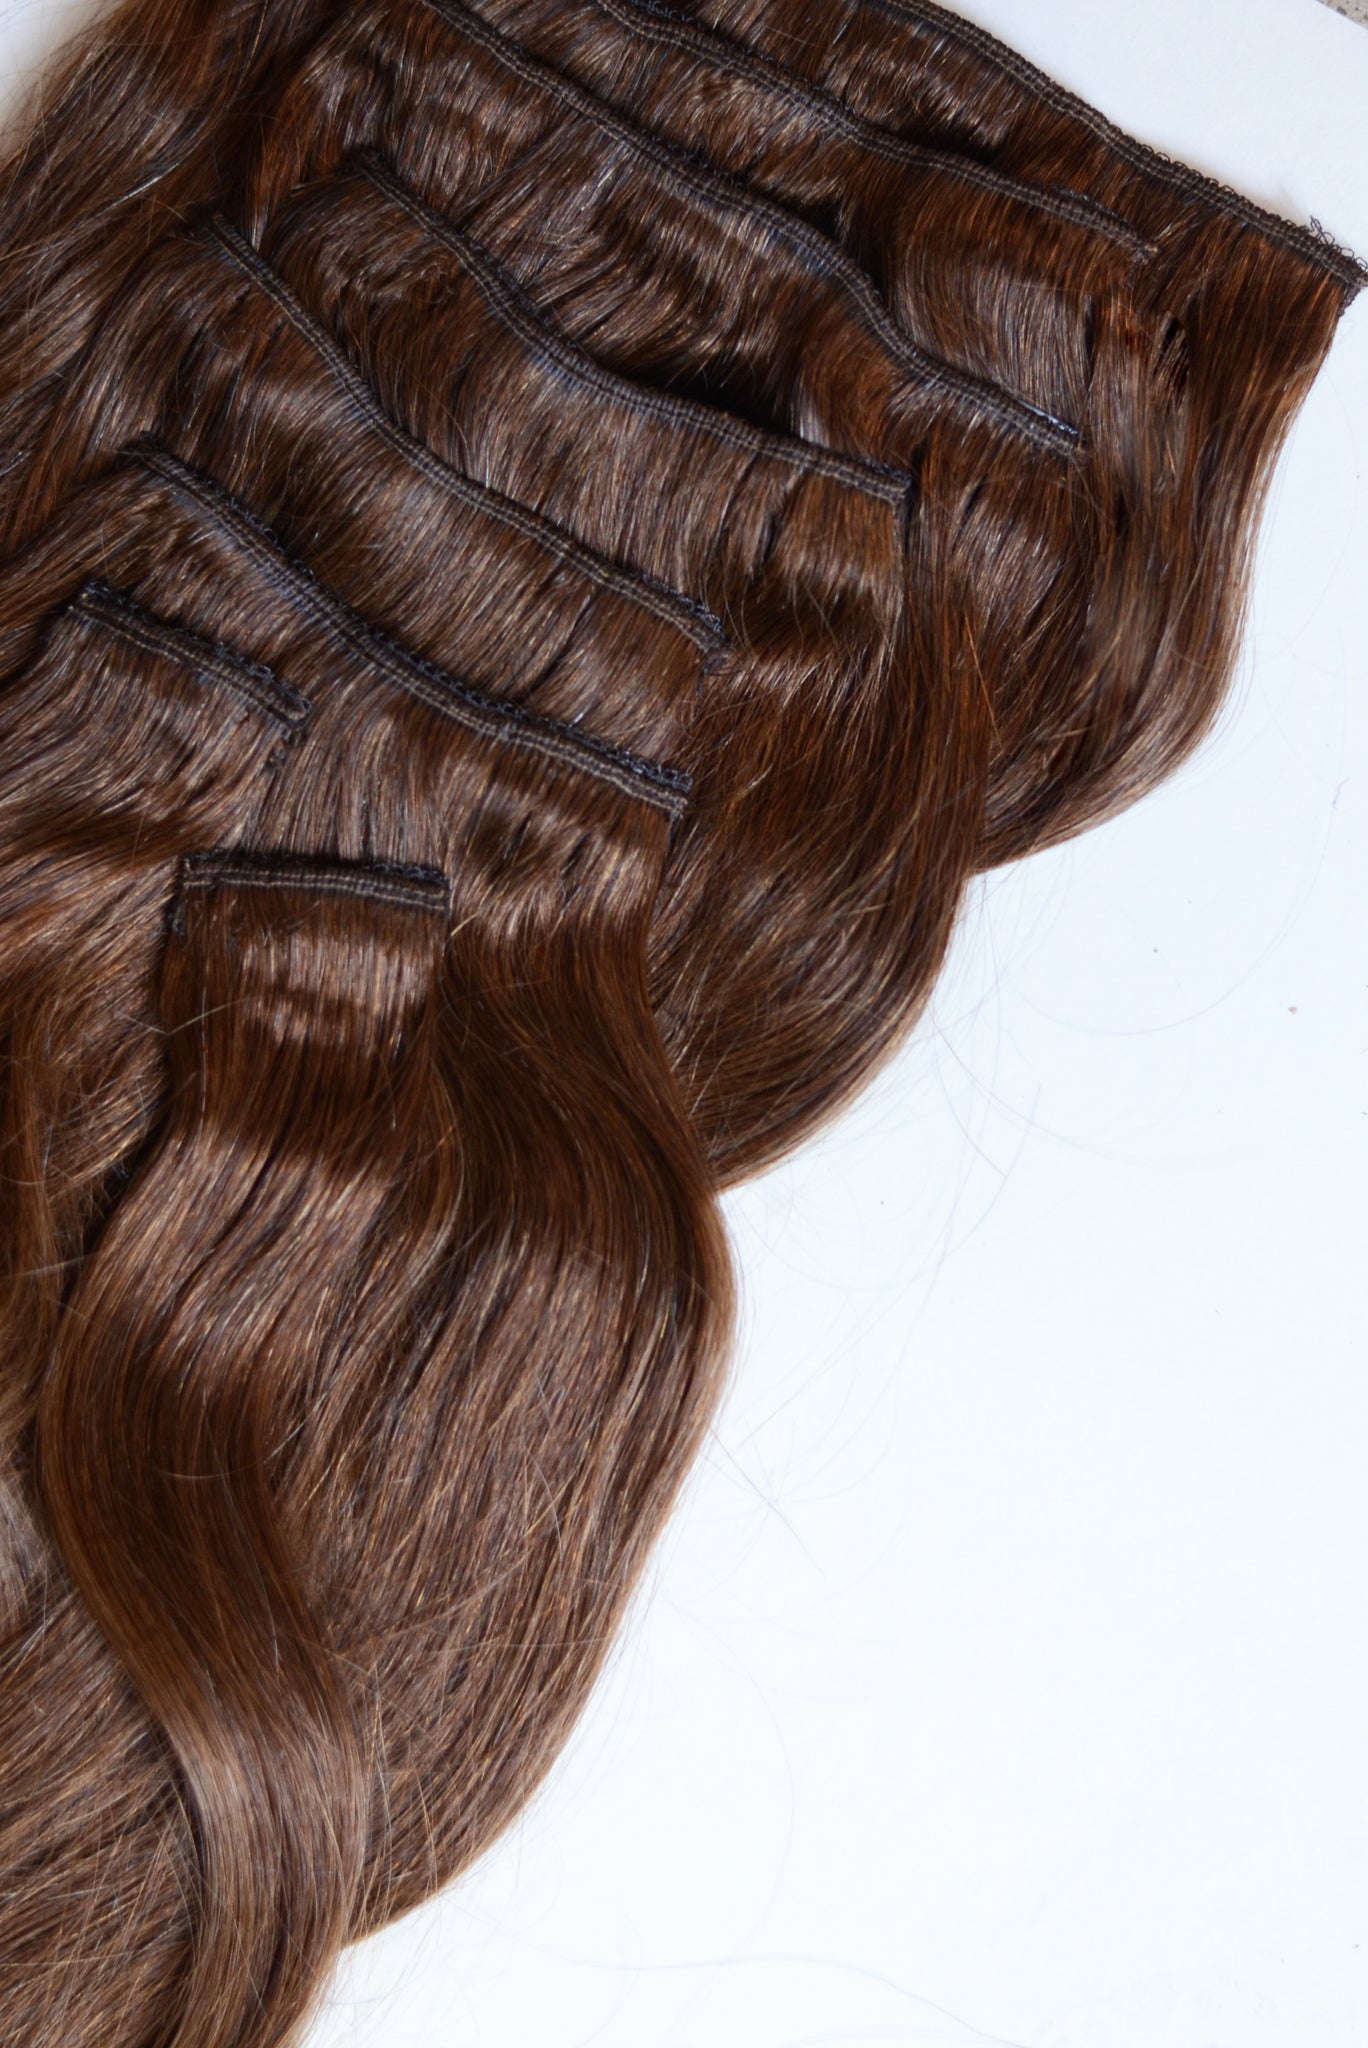 100% Remy clip-in human hair extensions 20 inches Color #6 Chestnut Brown